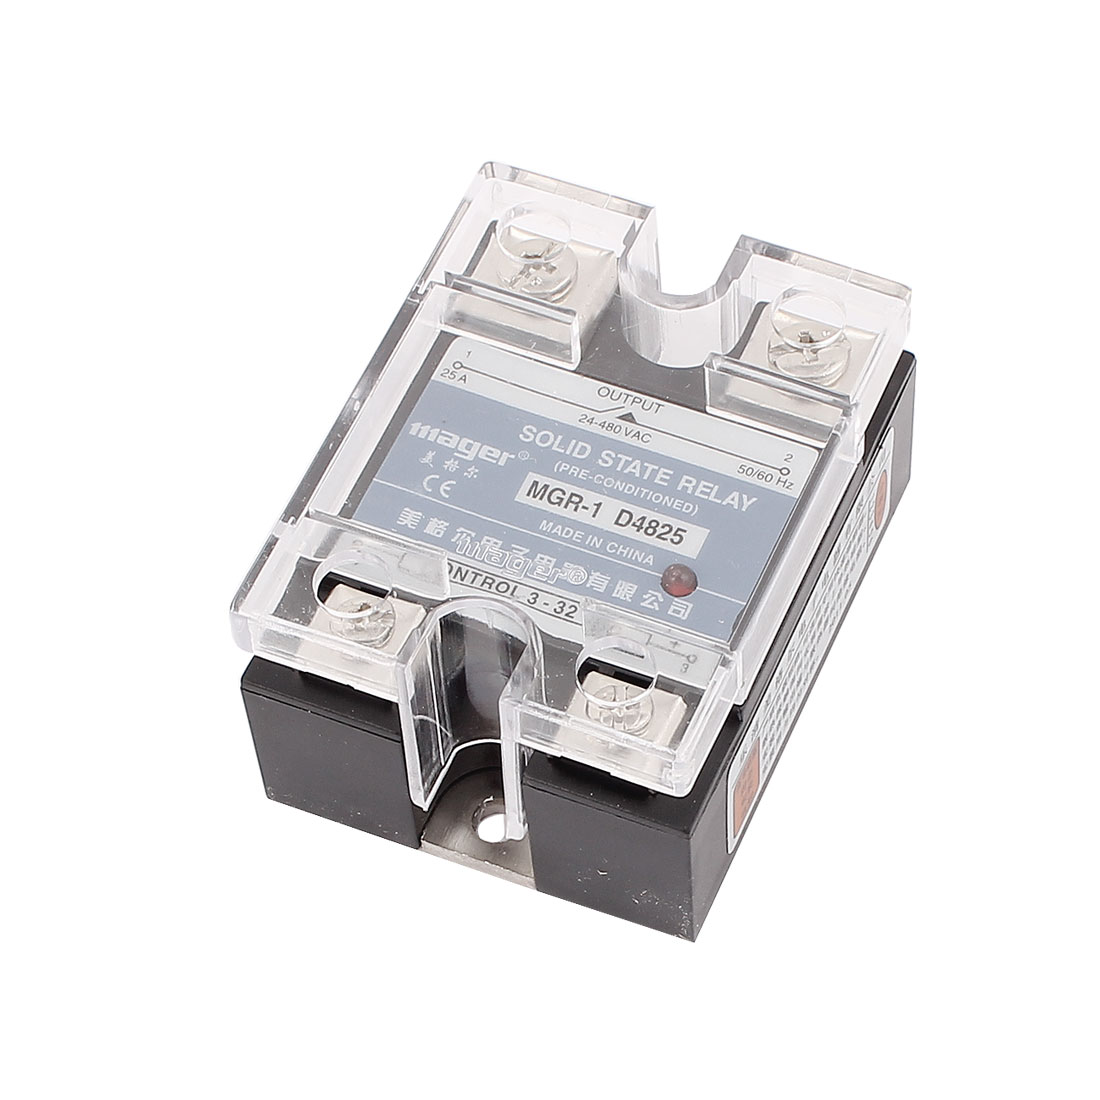 DC 3-32V Input to AC 24-480V Output Solid State Relay Module